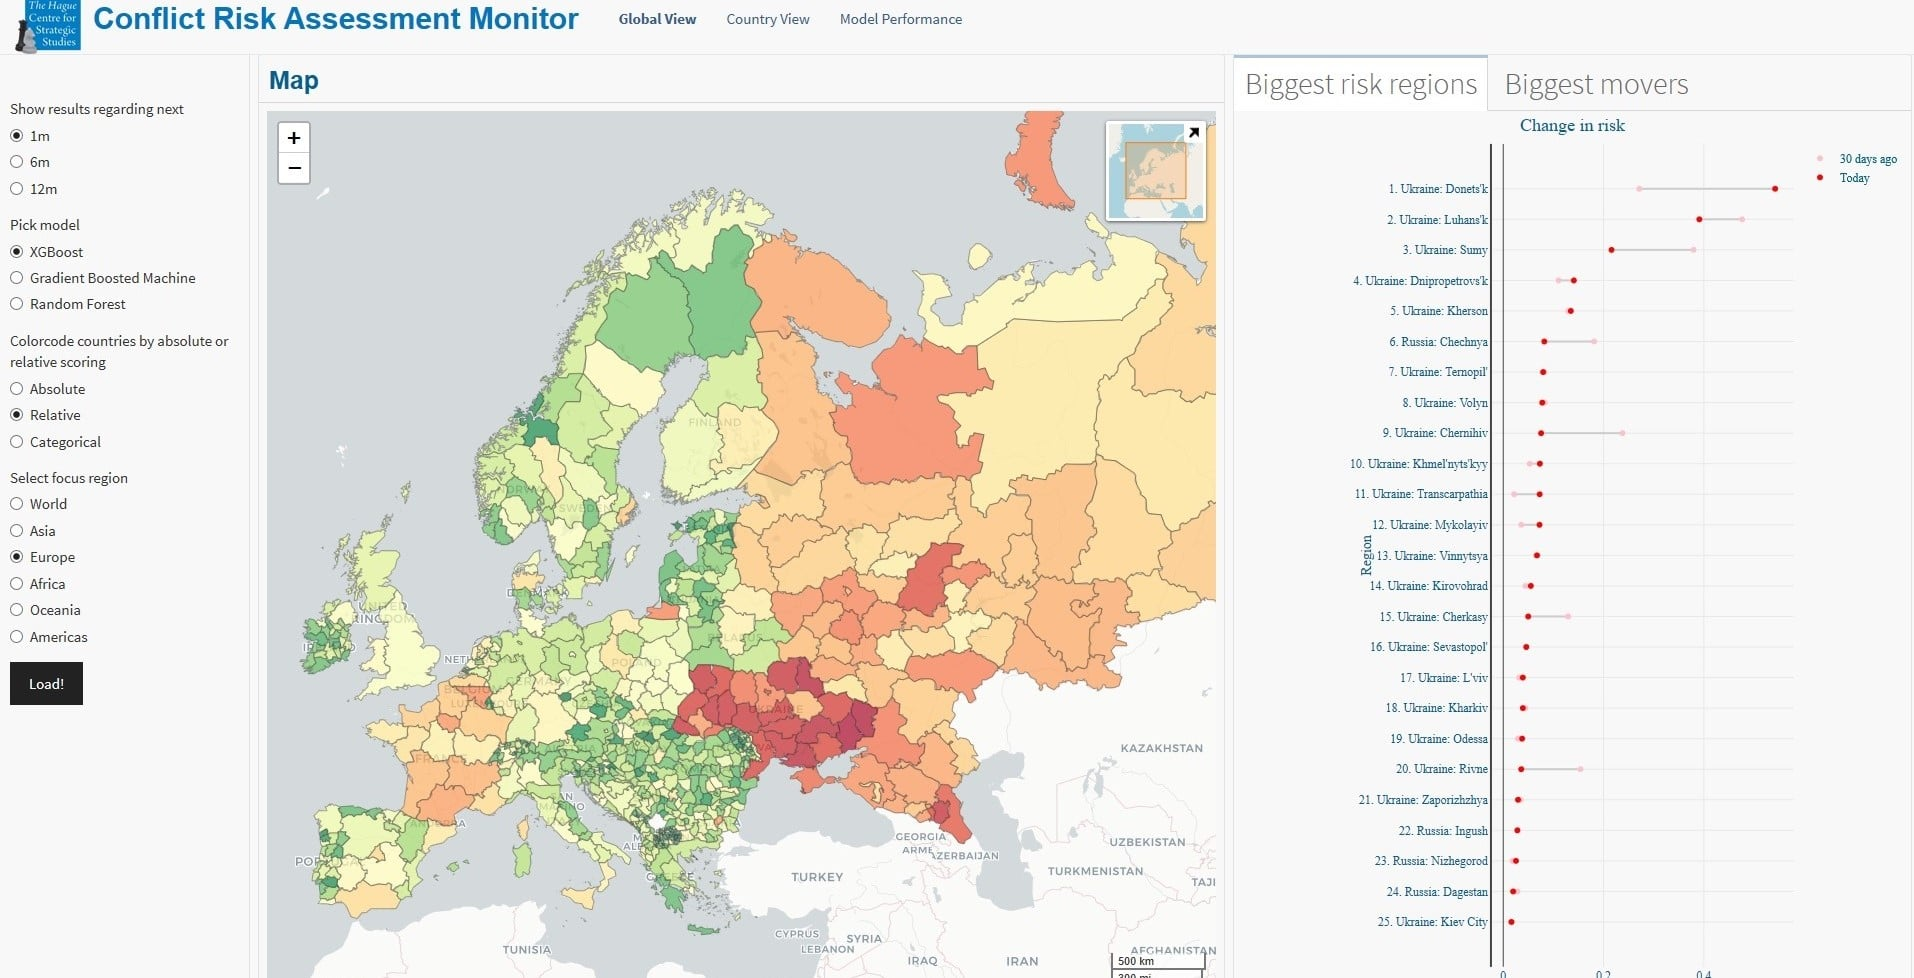 Conflict Risk Assessment Monitor 1